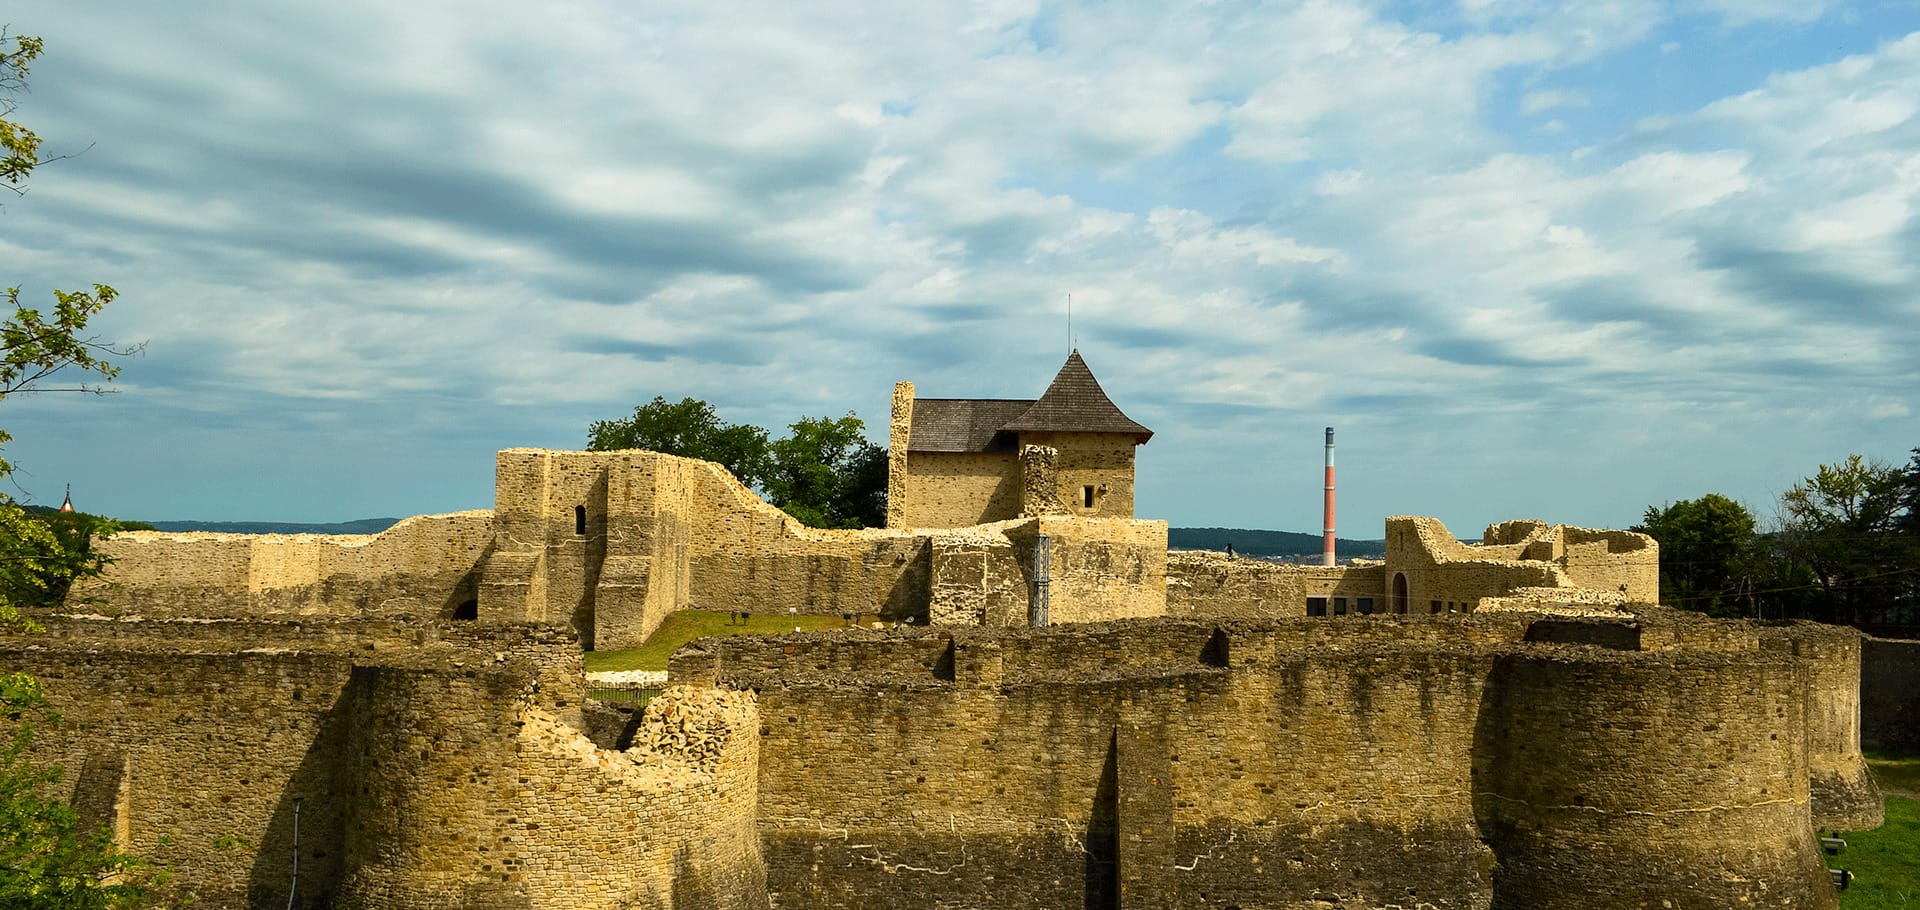 The Seat Fortress of Suceava